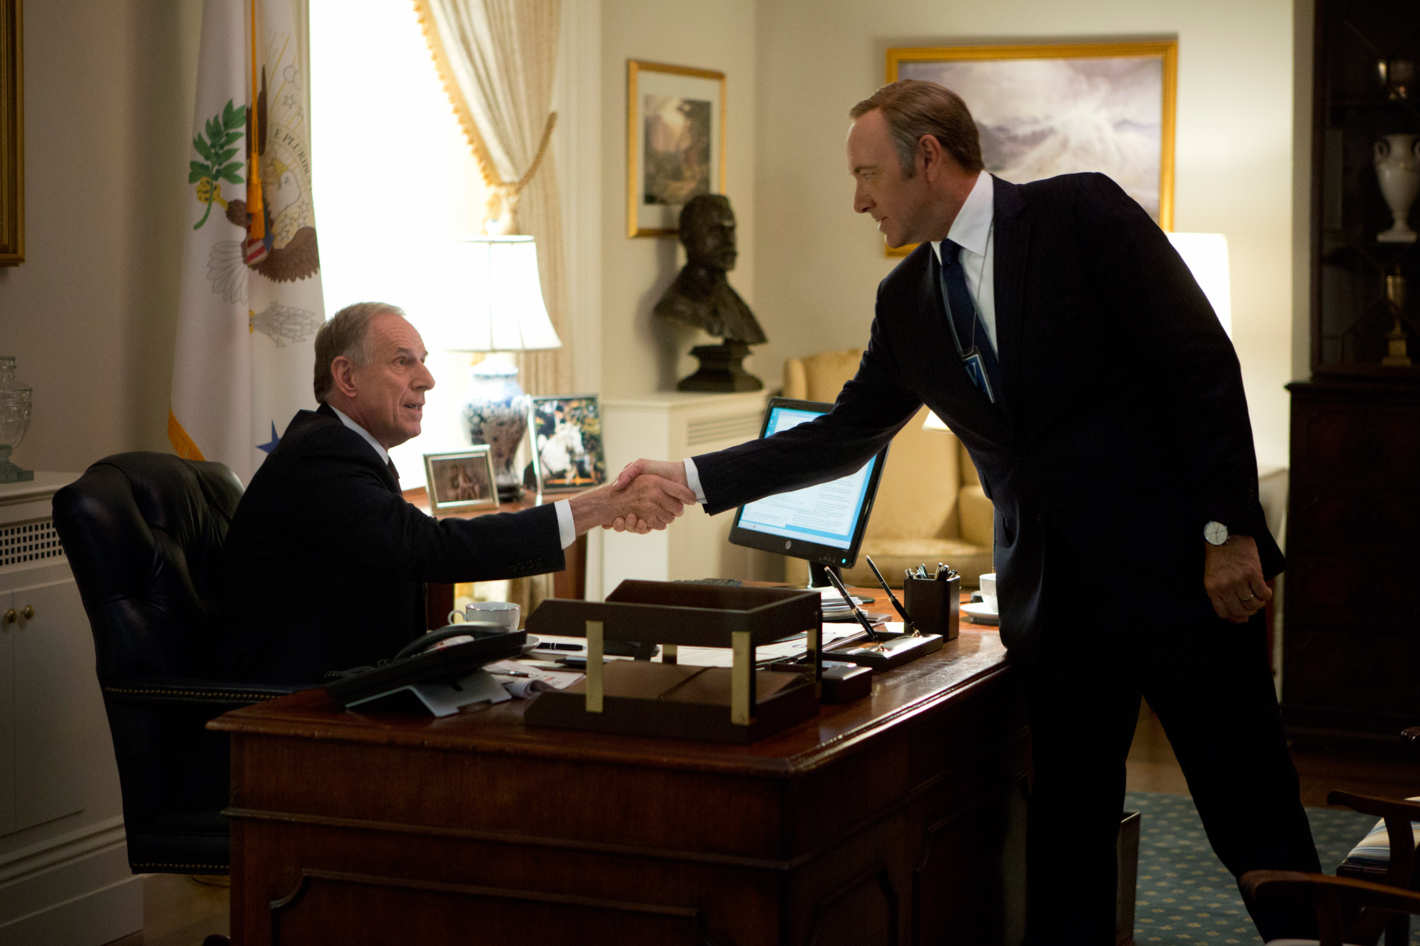 House Of Cards Season One Recap Episodes 10 13 Rebellion On All Fronts